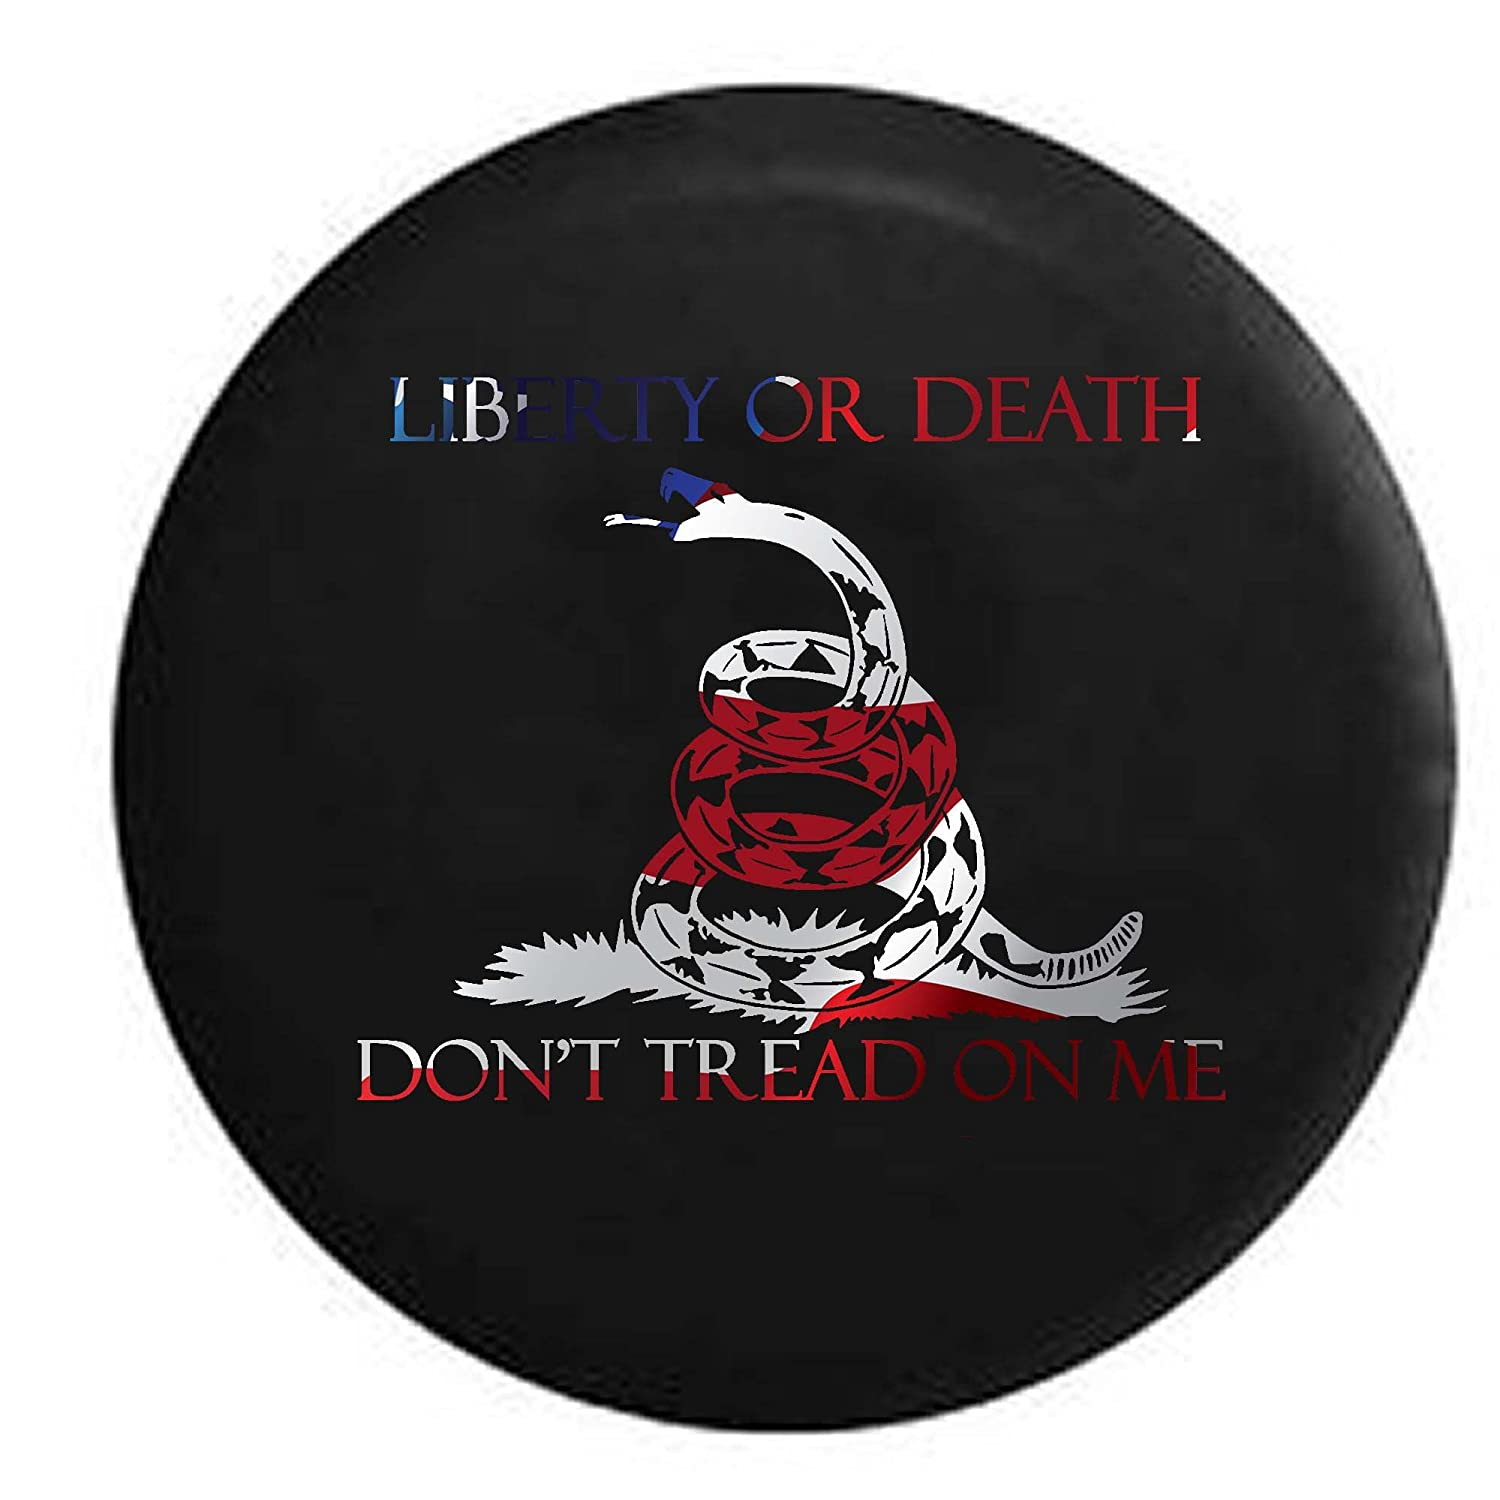 Liberty or Death Dont Tread On Me Gadsgen Snake US Rights Trailer RV Spare Tire Cover OEM Vinyl Black 32 in Pike Outdoors Pike Stealth